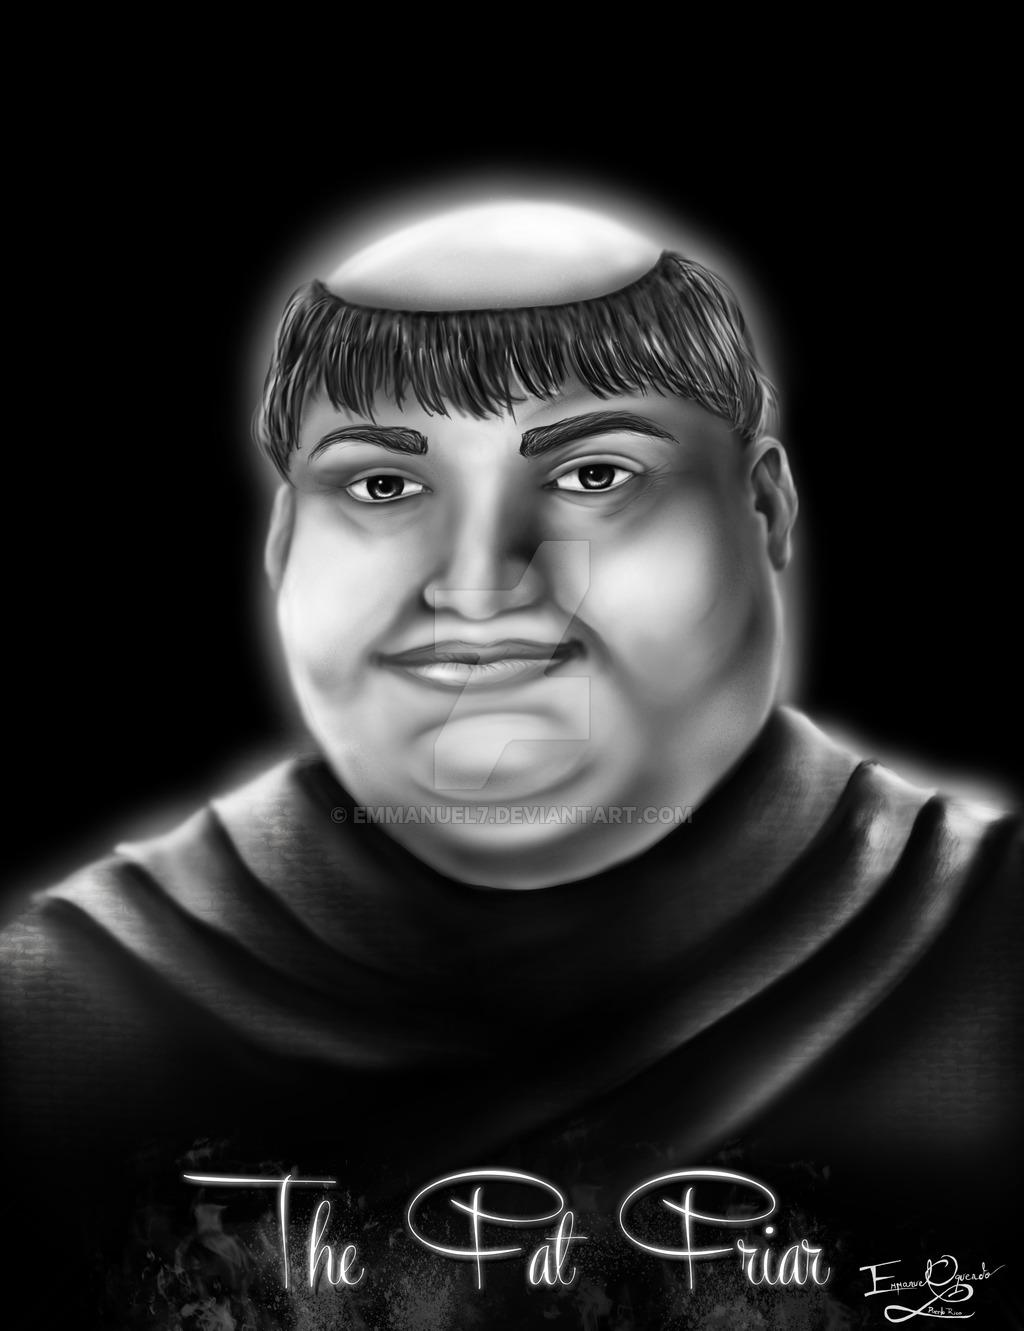 the_fat_friar__hufflepuff_house_ghost_by_emmanuel7-d6bekpz